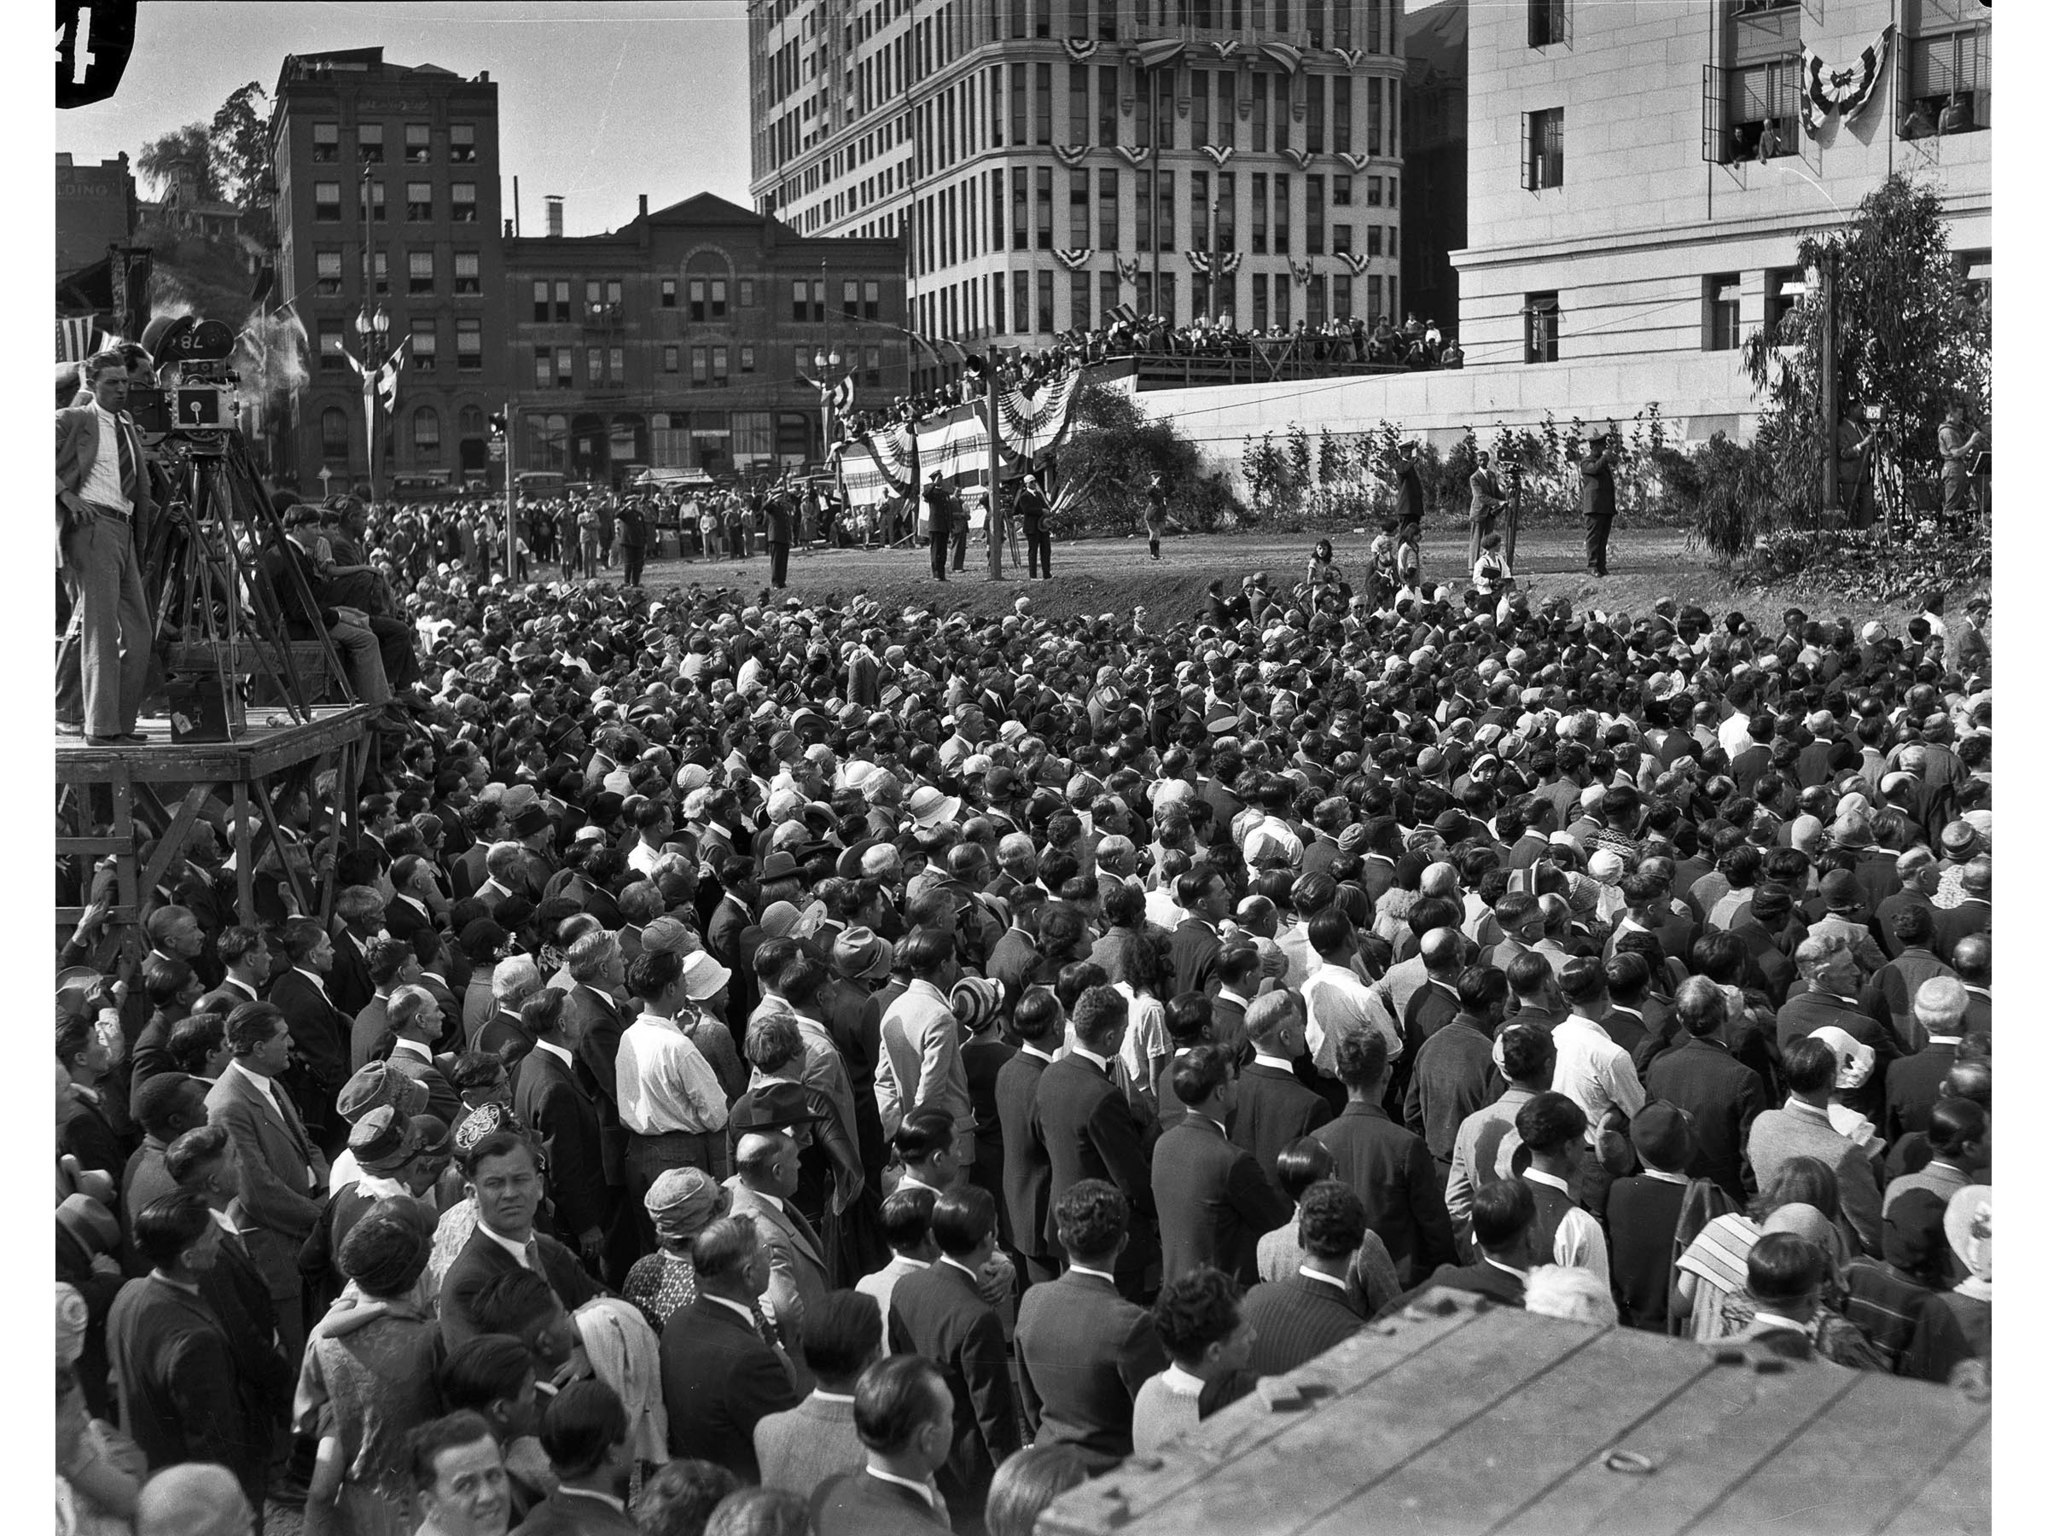 April 26, 1928: Crowd at Los Angeles City Hall dedication ceremonies. The program was on the South T